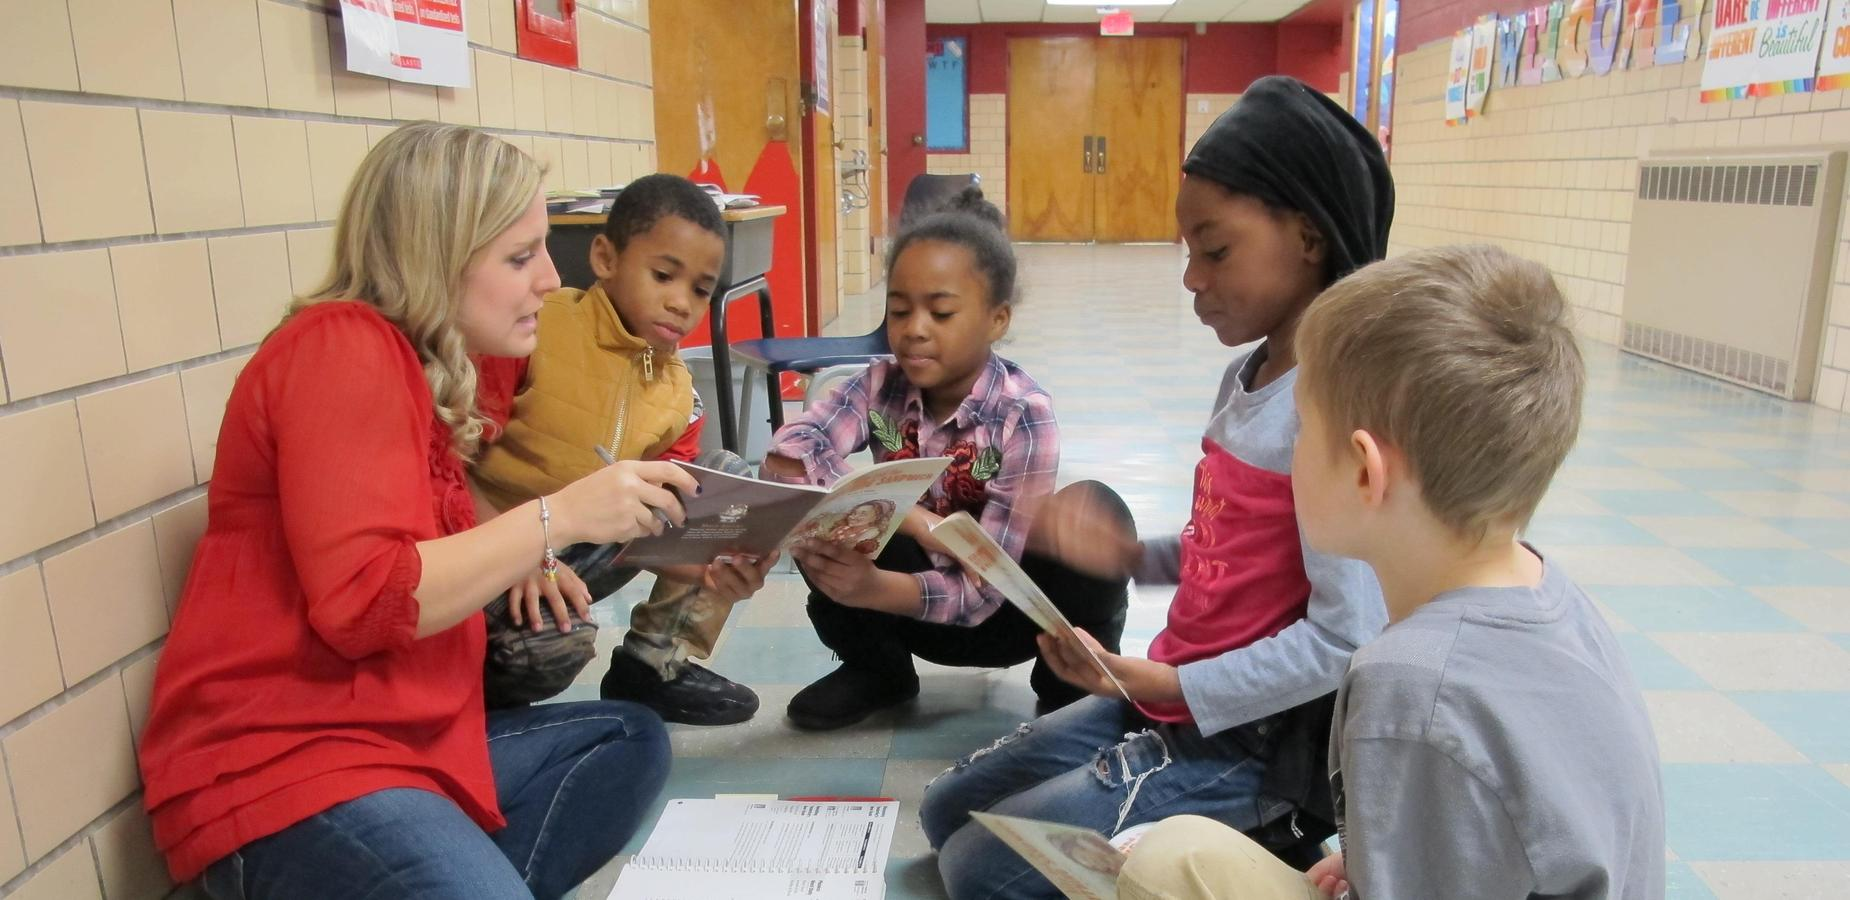 Teacher working with a reading circle of students.